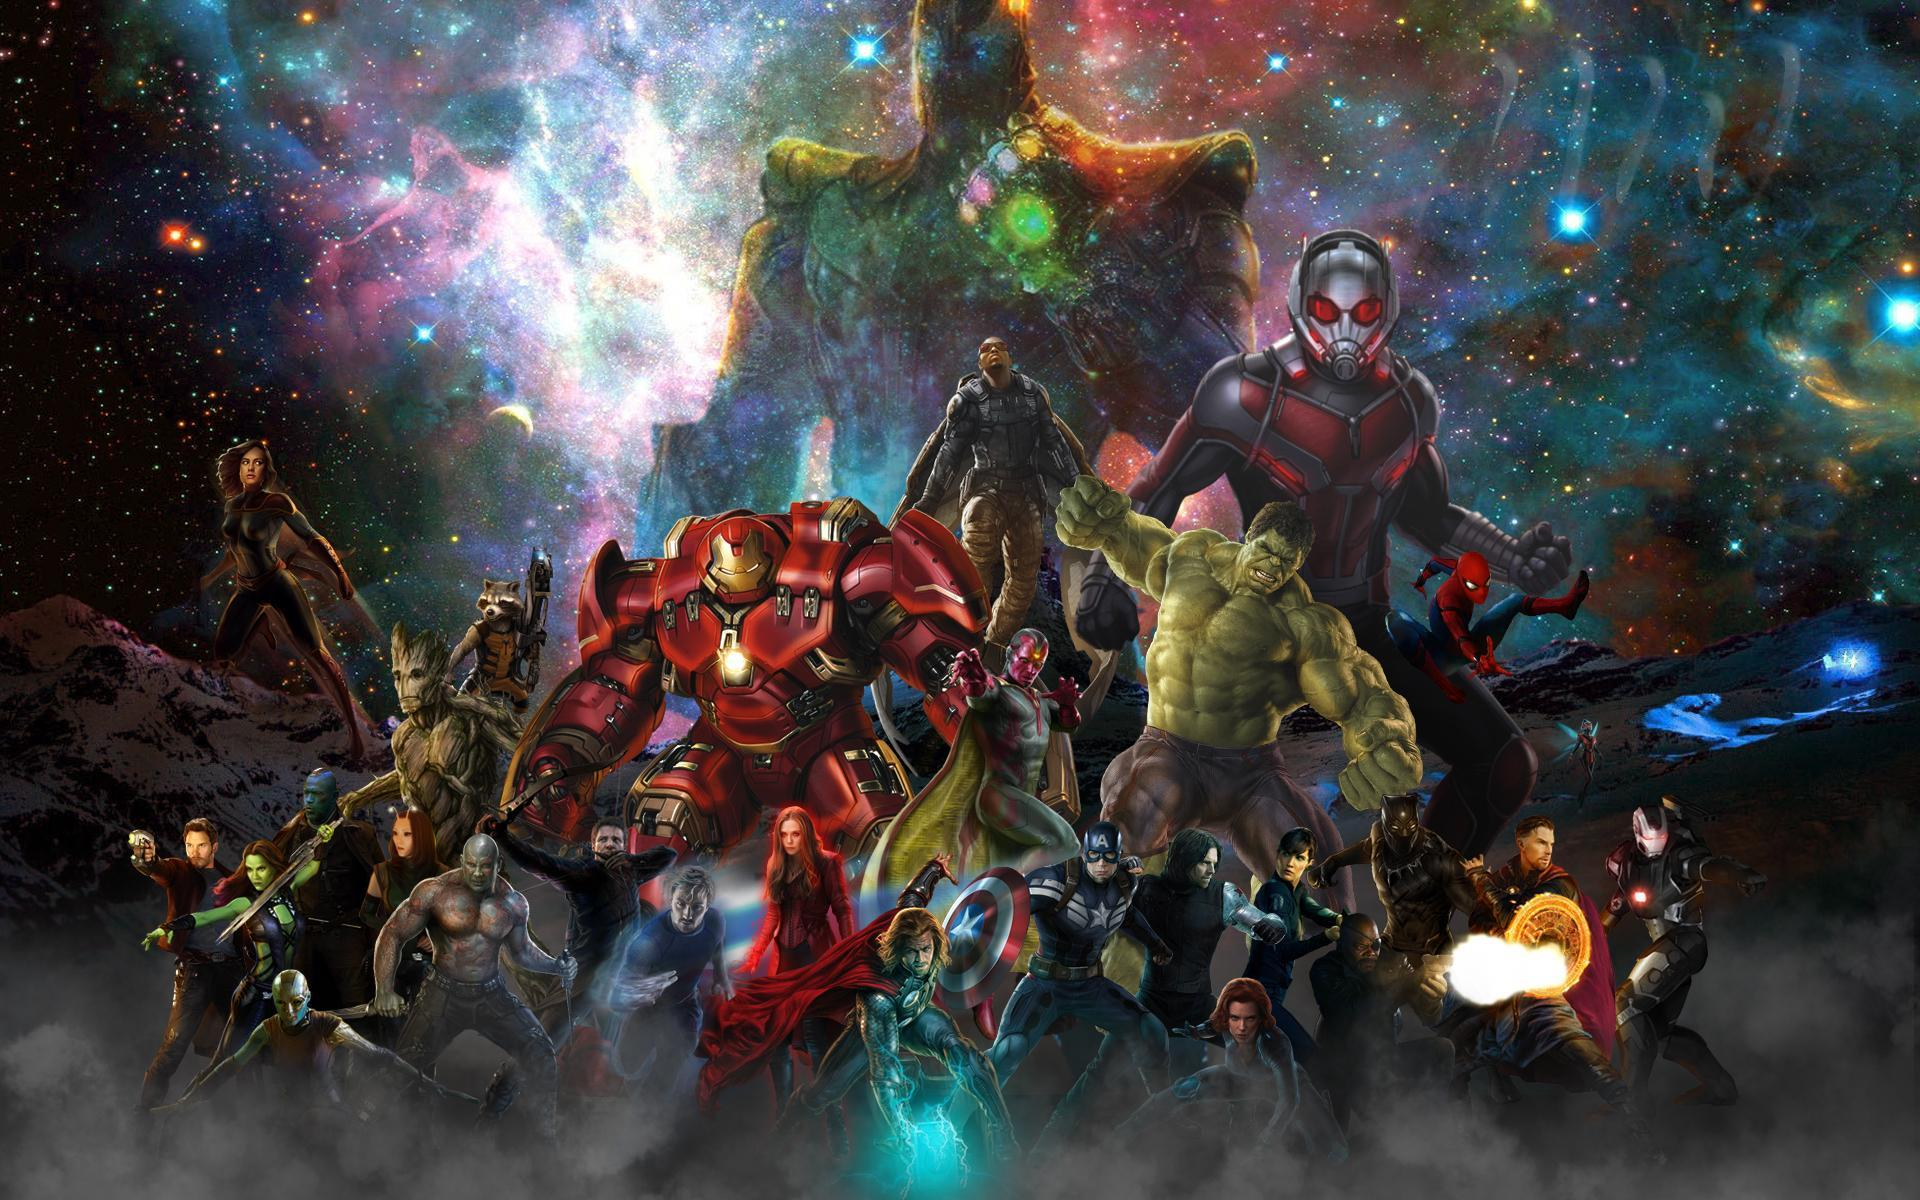 The Infinity Collective - The ensemble leading up to Infinity War ...